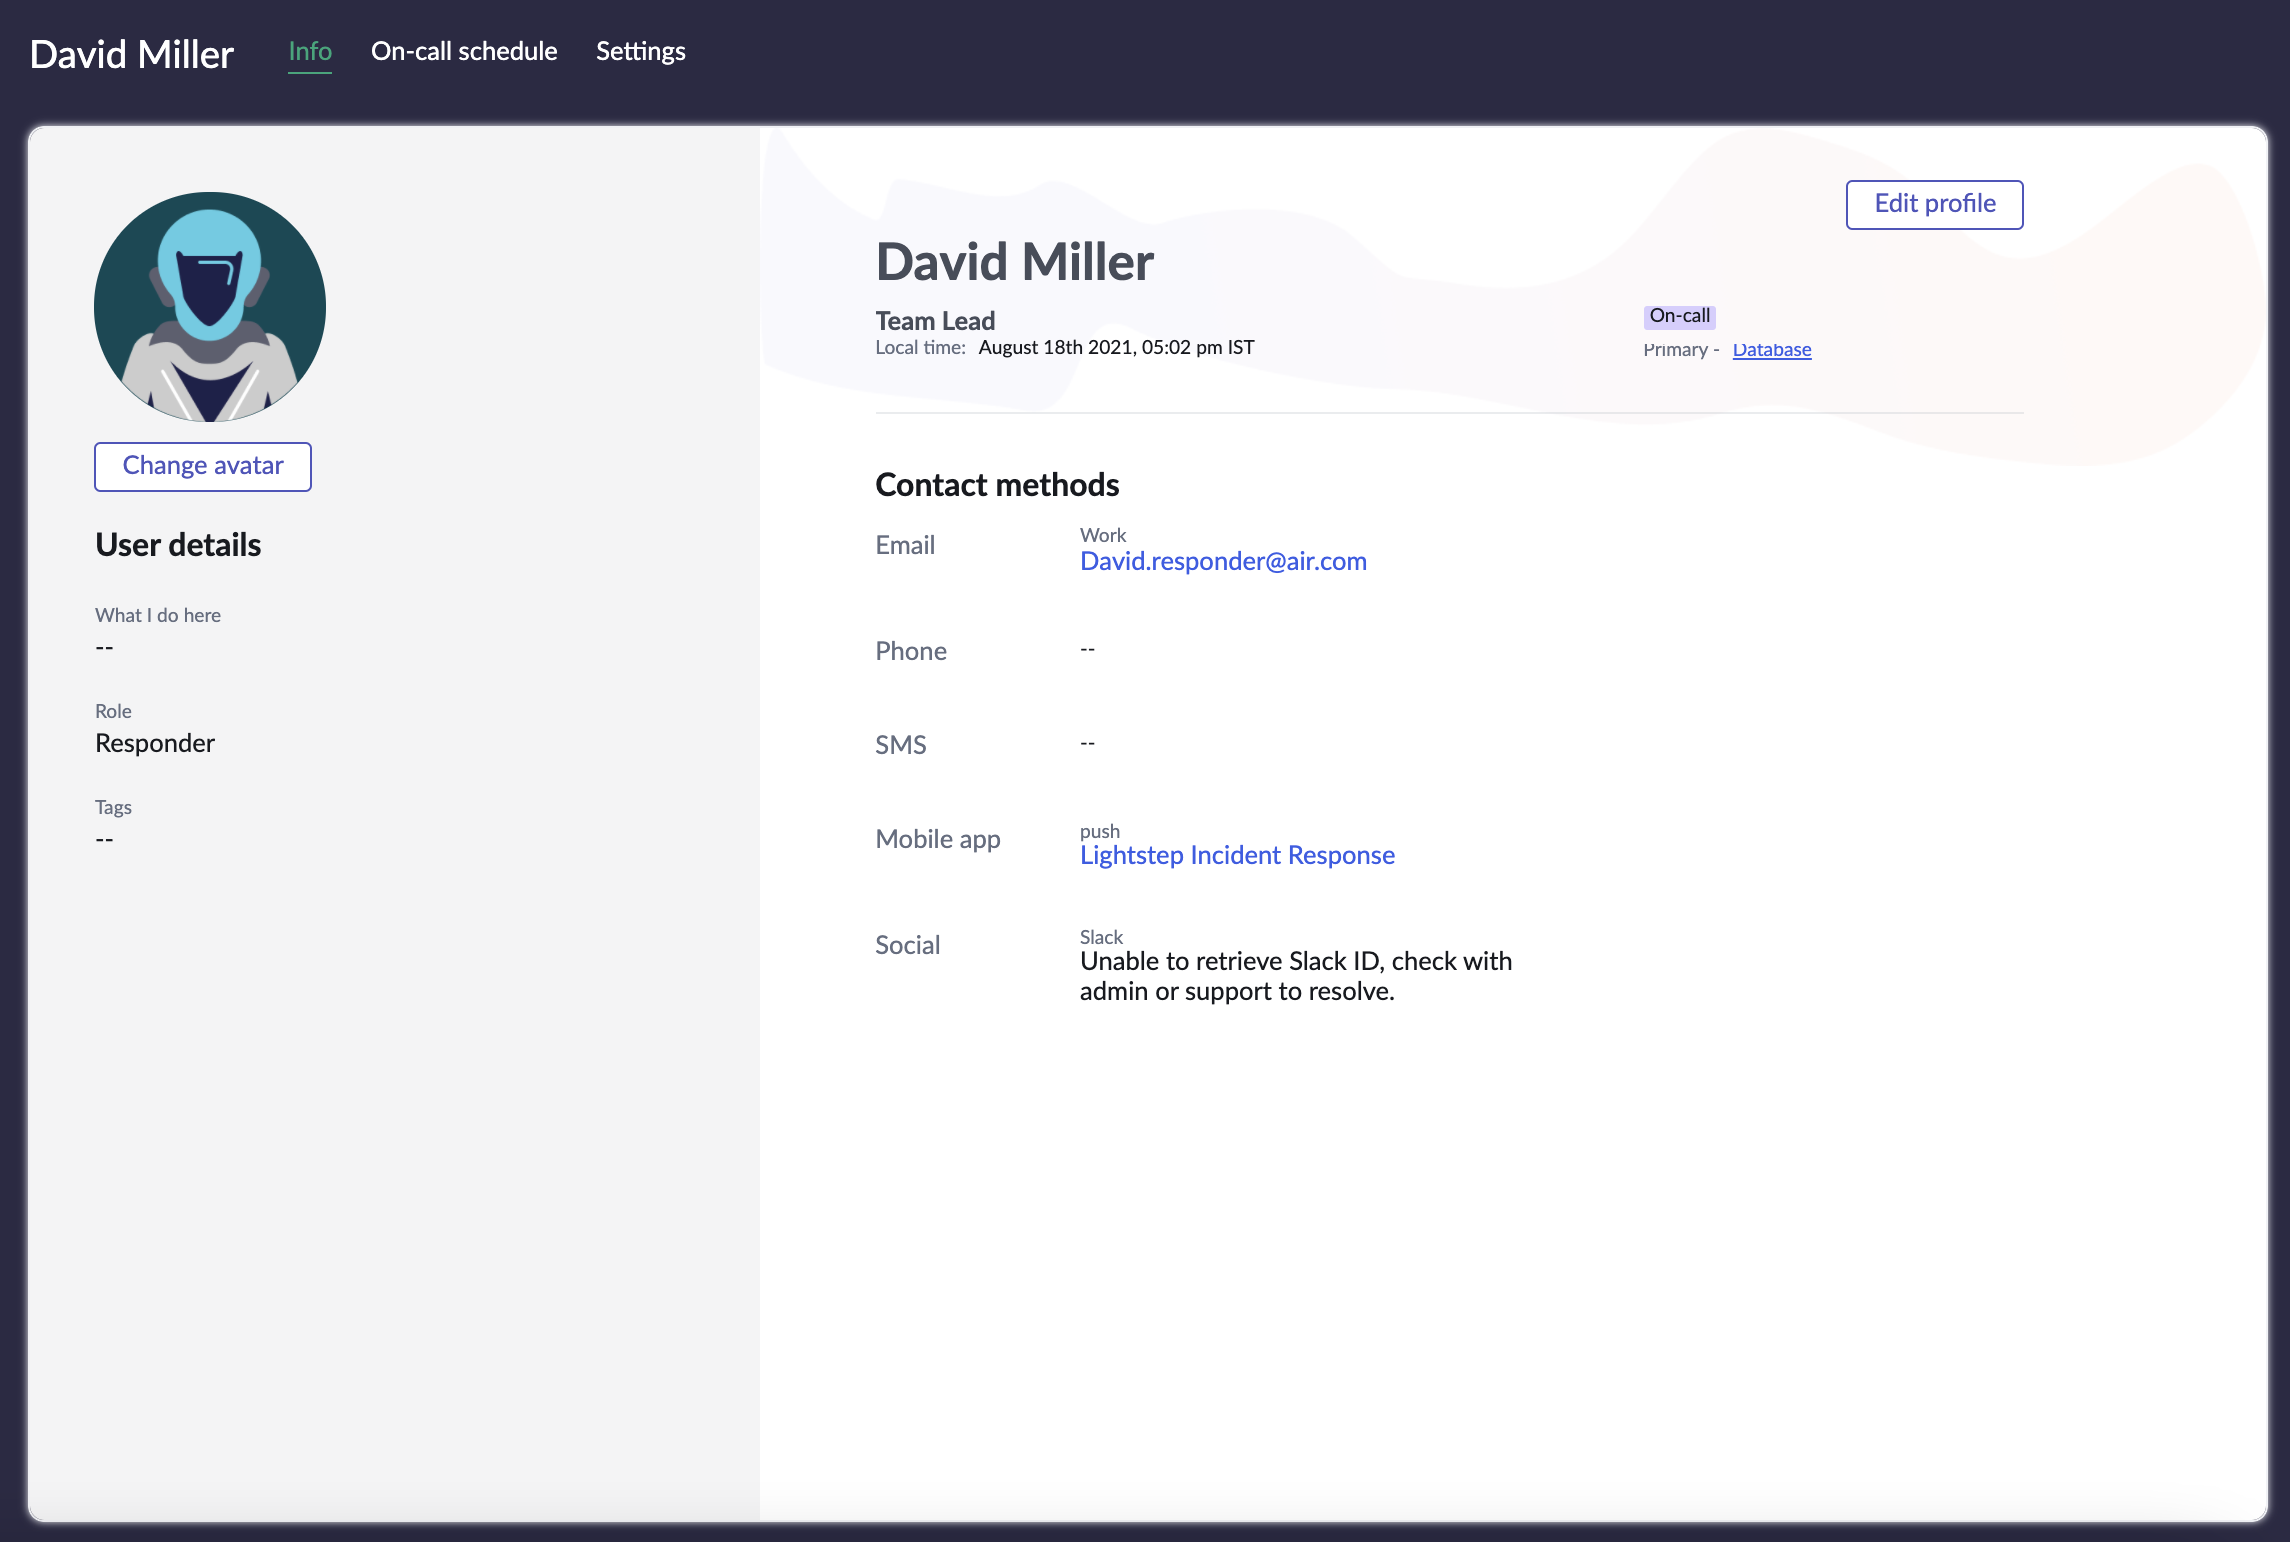 Profile page of the user where you can update details